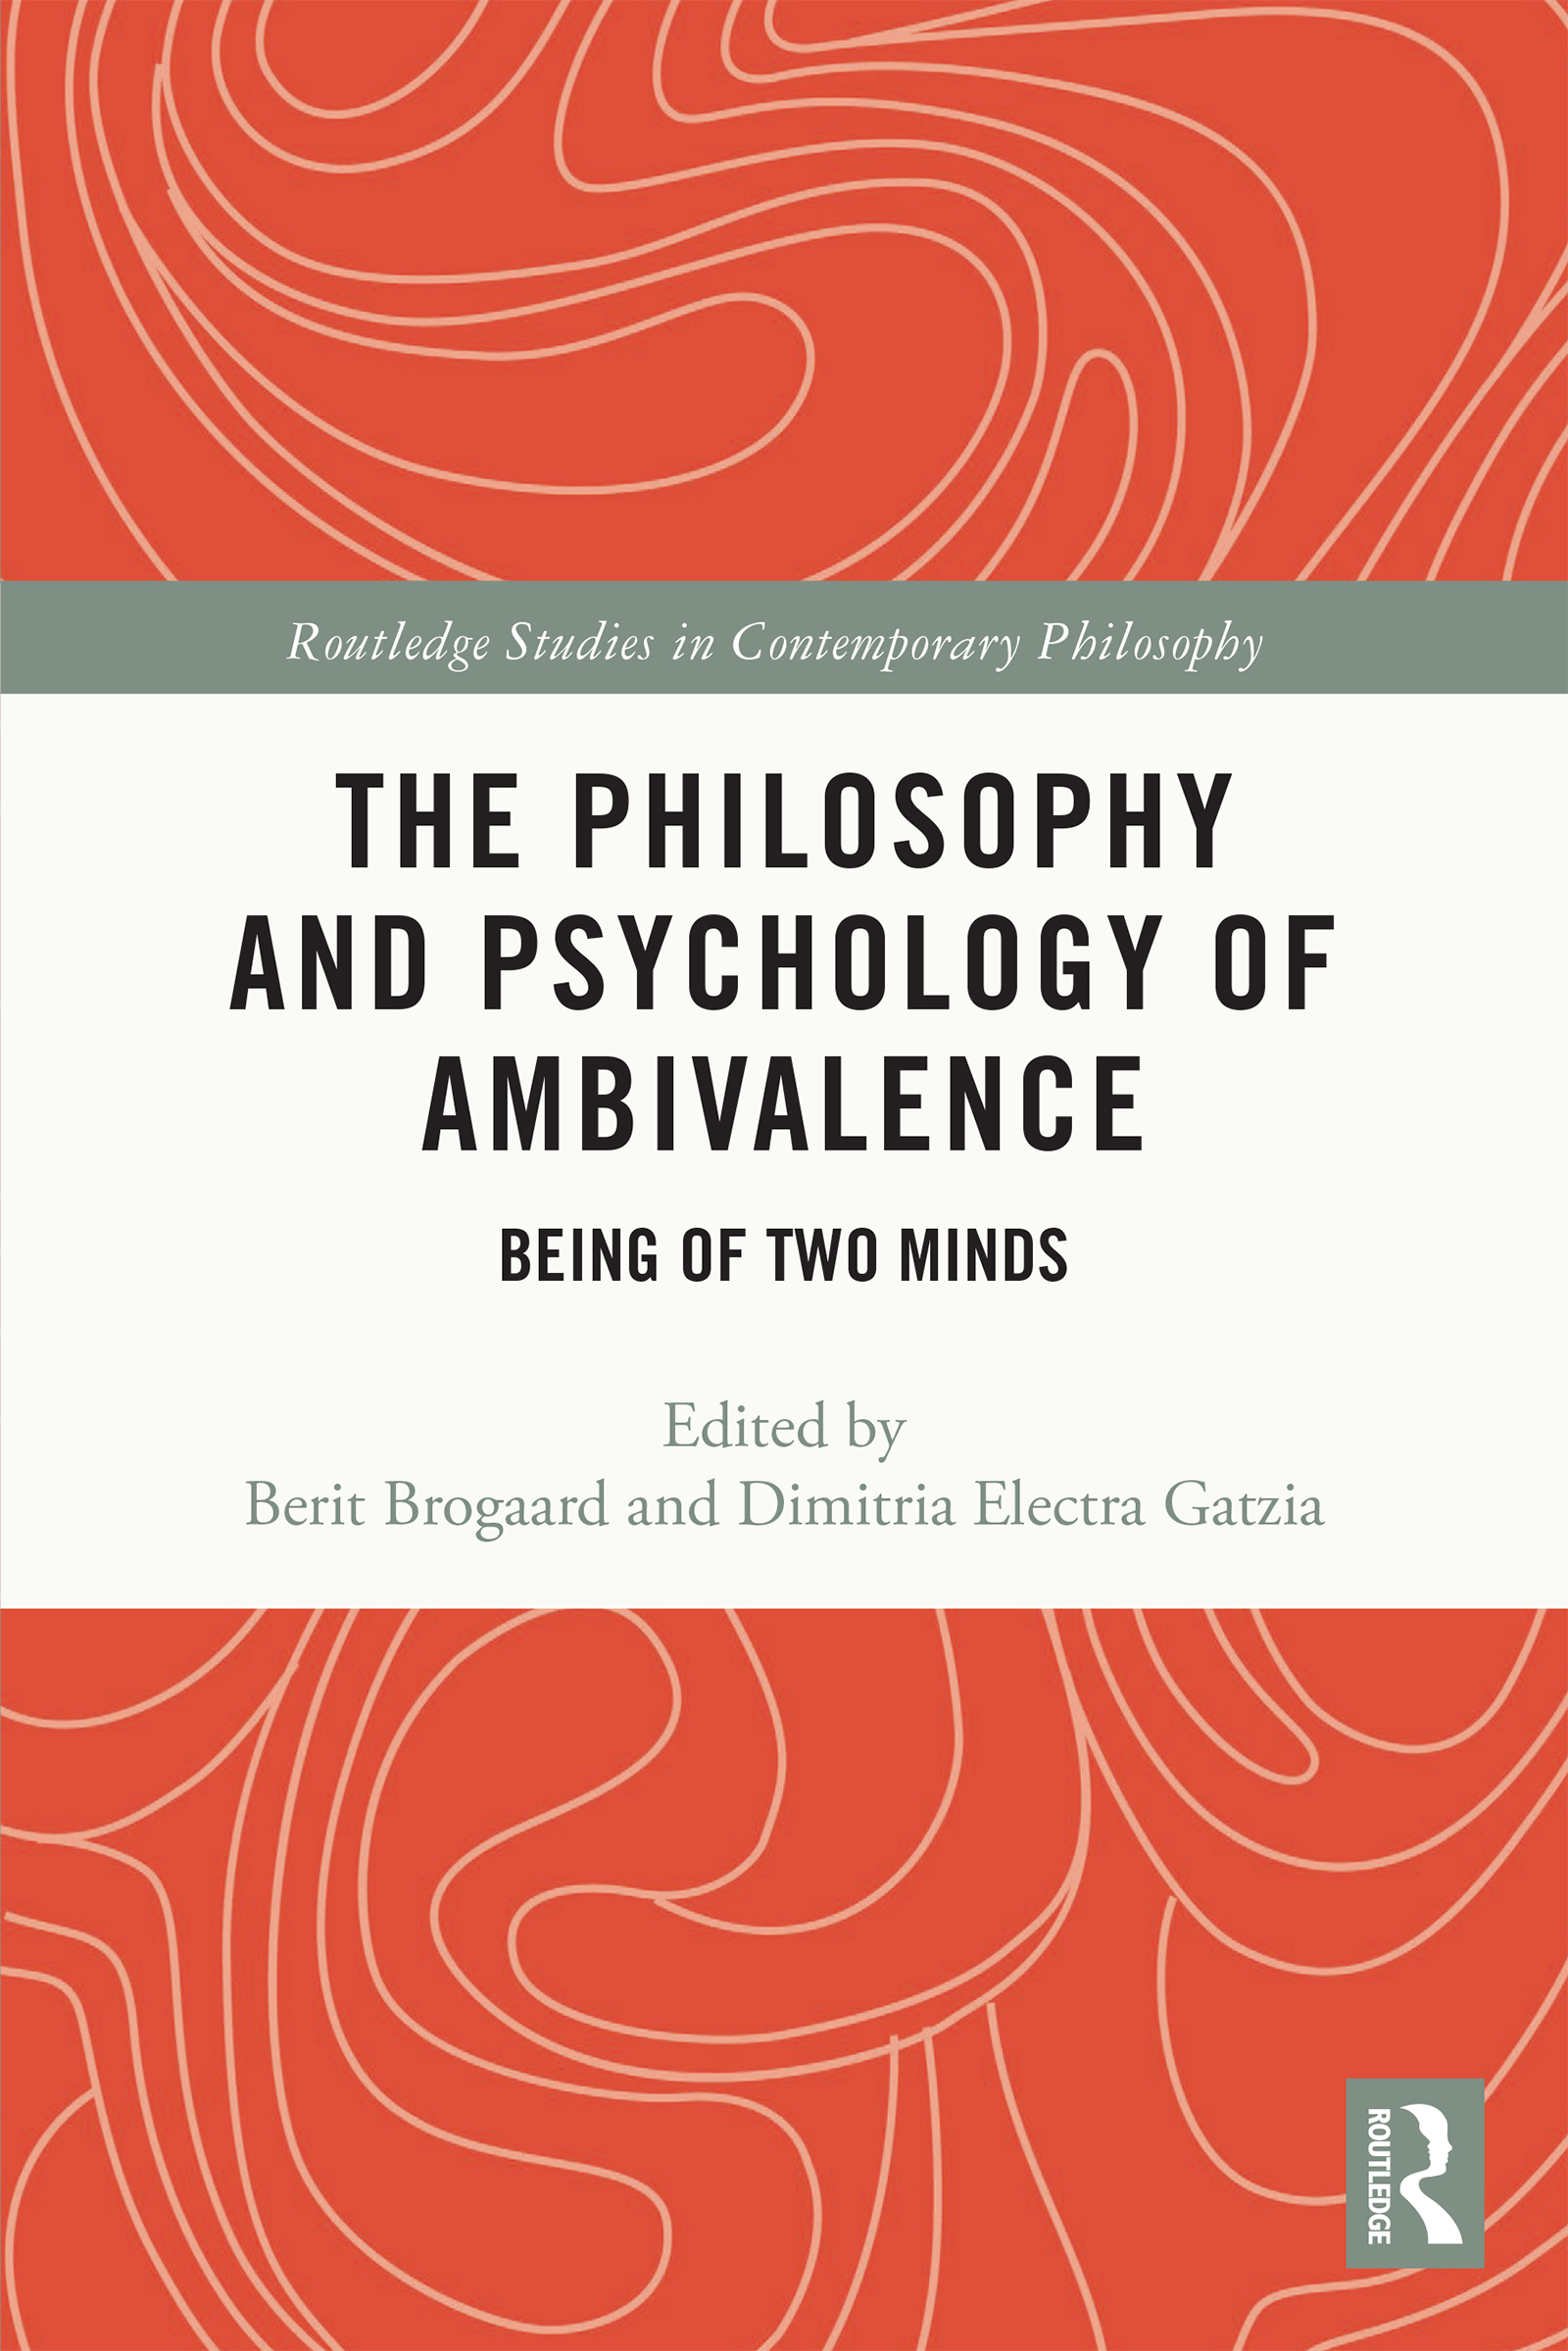 The Philosophical and Psychological Significance of Ambivalence: An Introduction